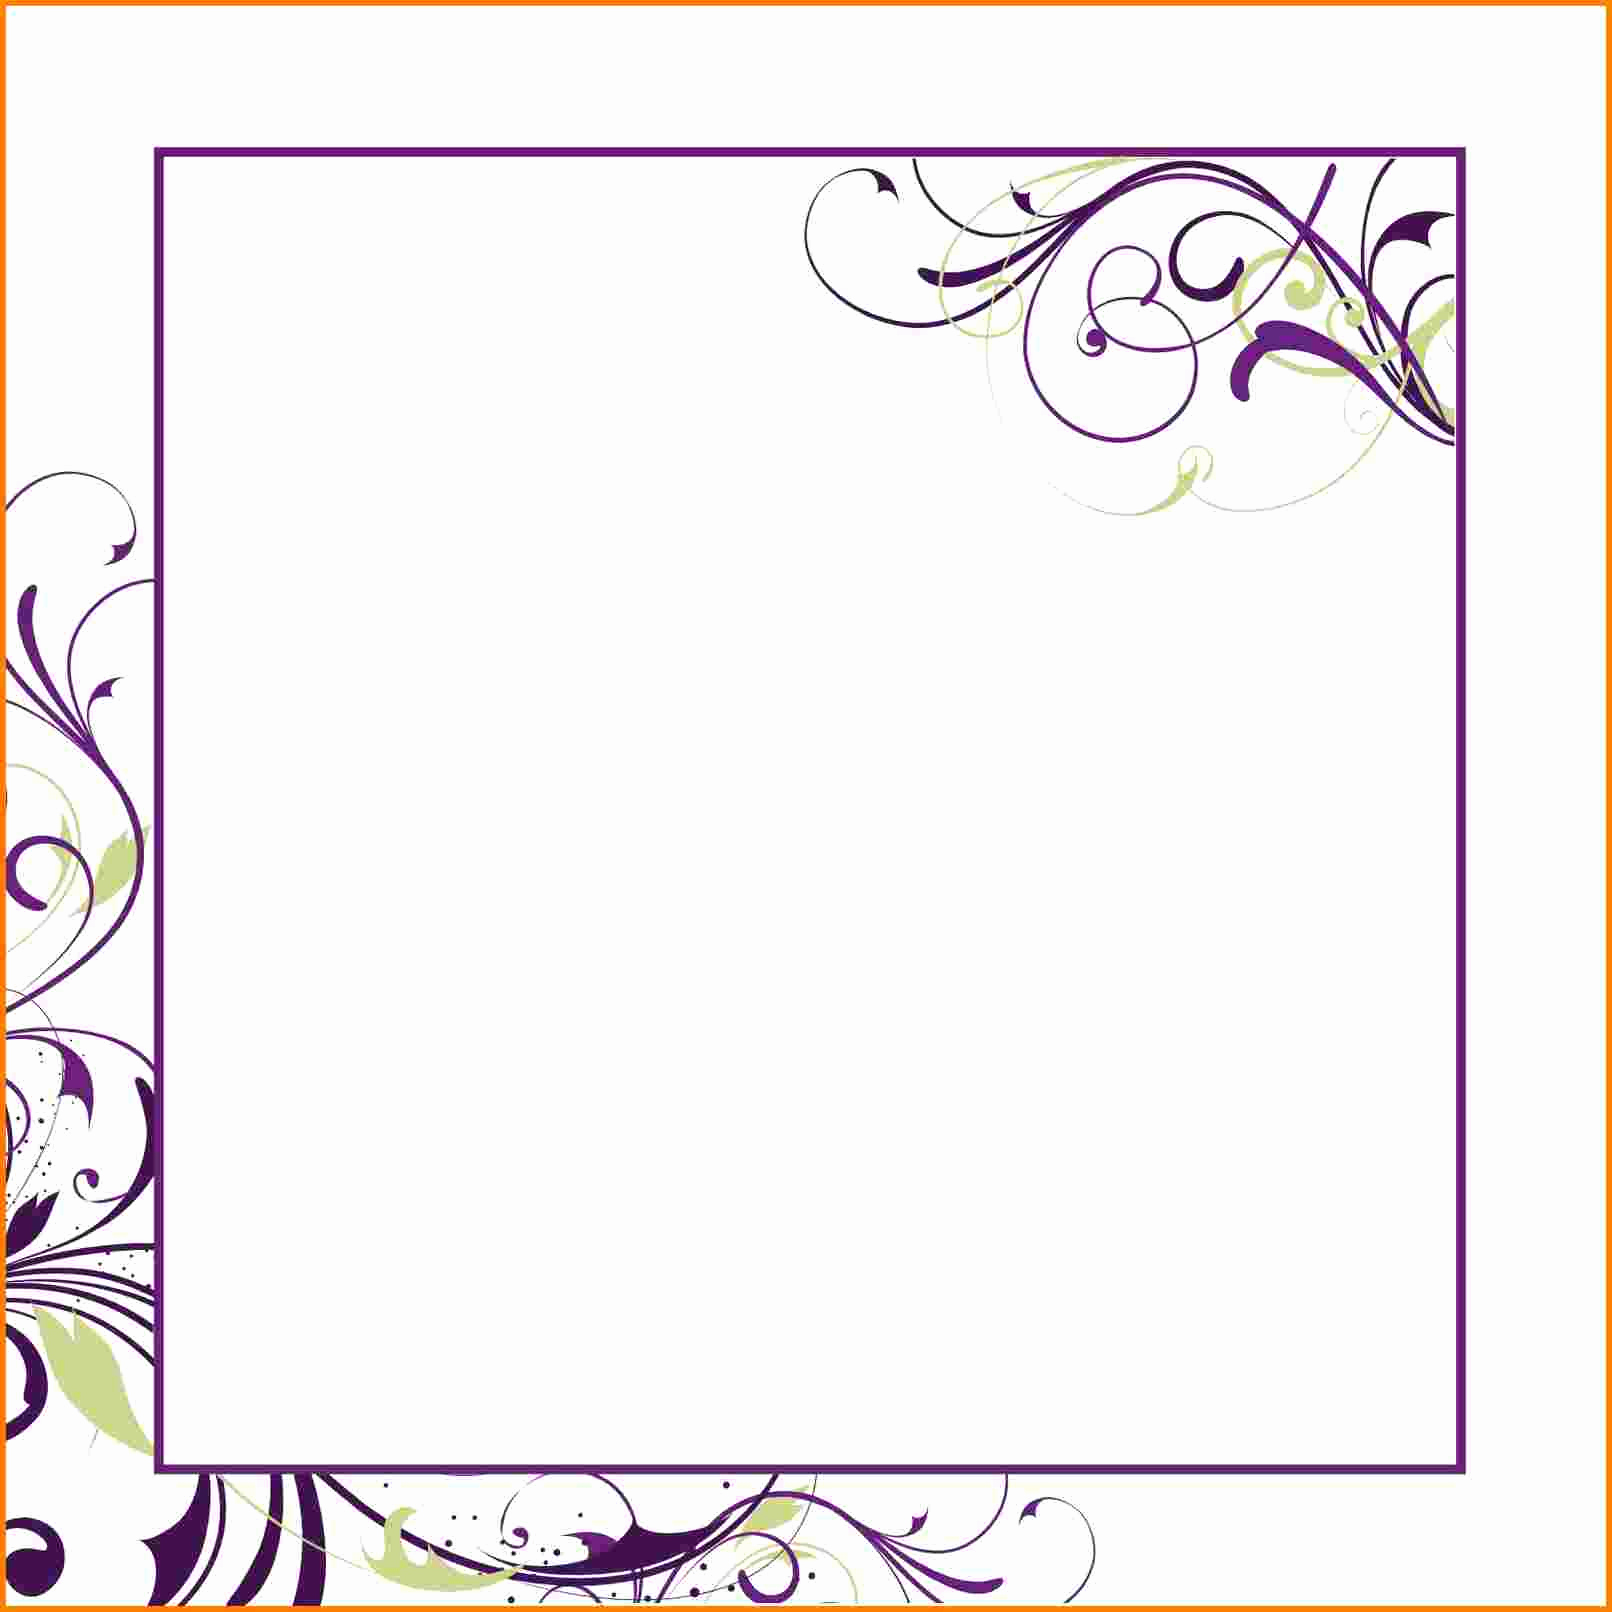 Free Blank Invitation Templates Unique Blank Invitation Templates for Microsoft Word